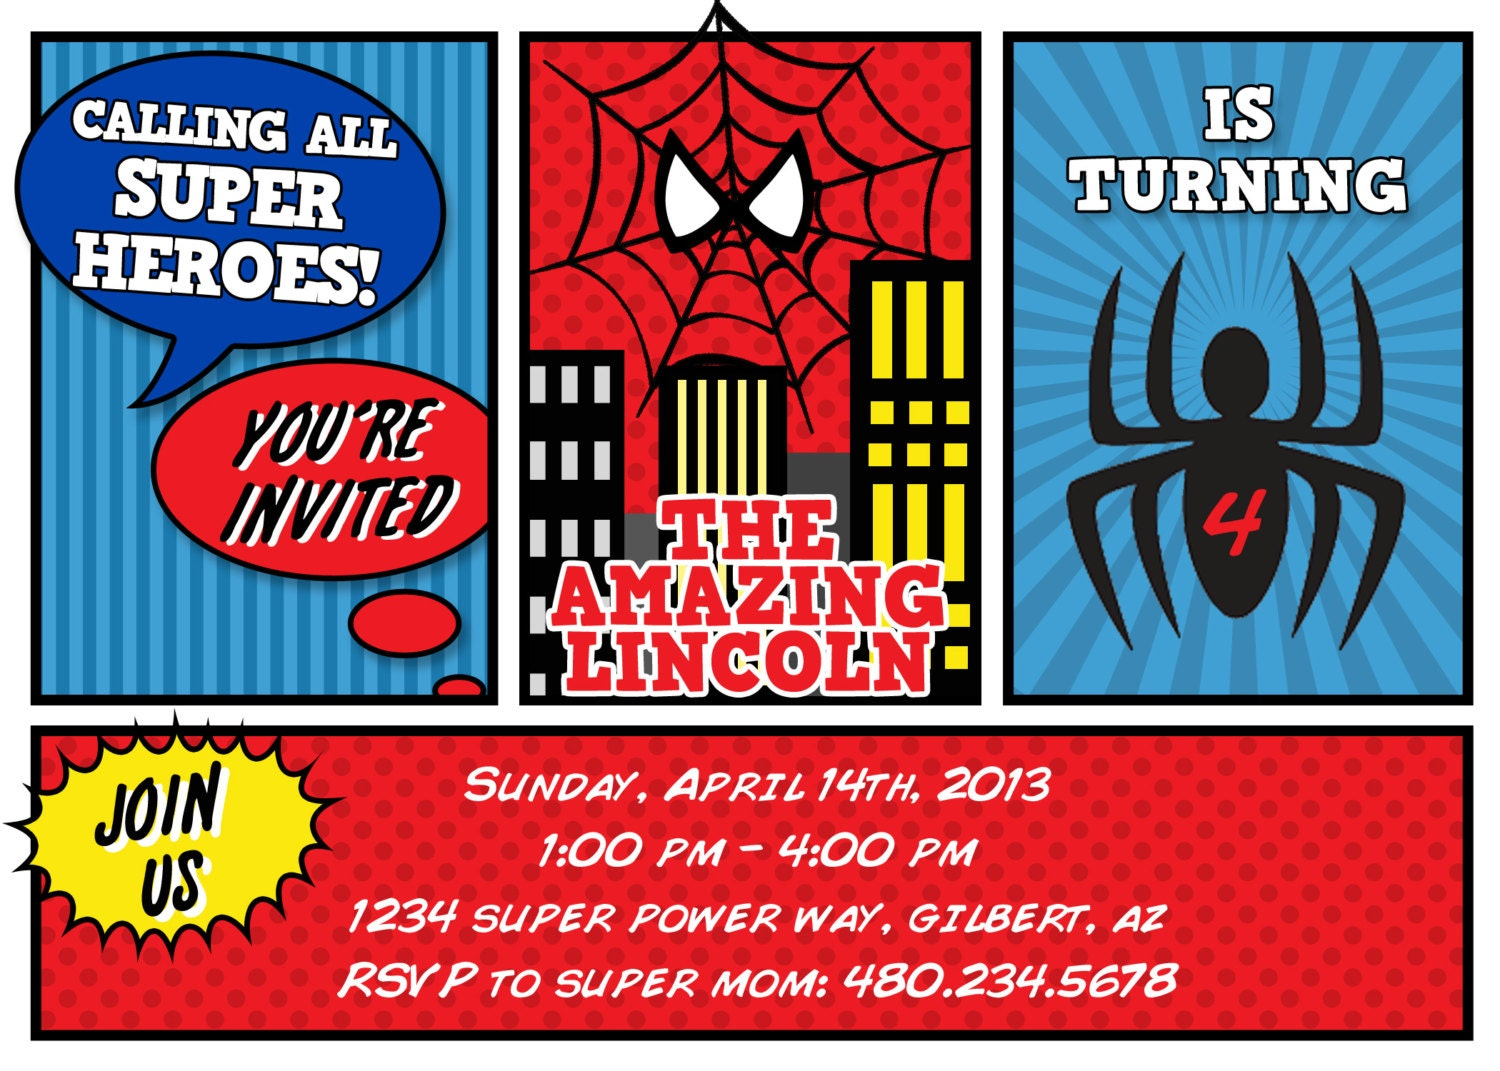 Spiderman Party Invitations is an amazing ideas you had to choose for invitation design